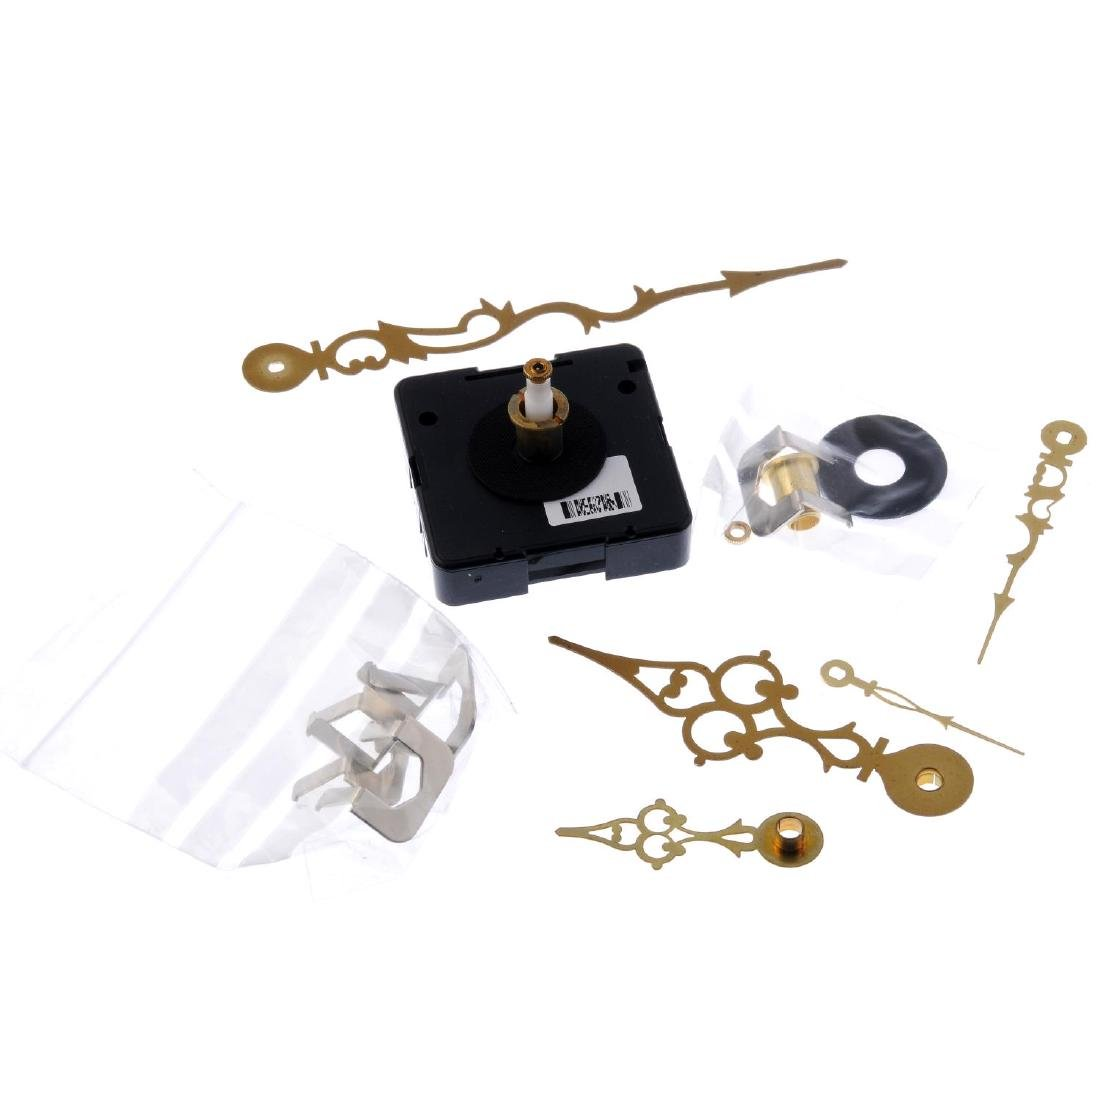 A quantity of assorted clock and watch parts.